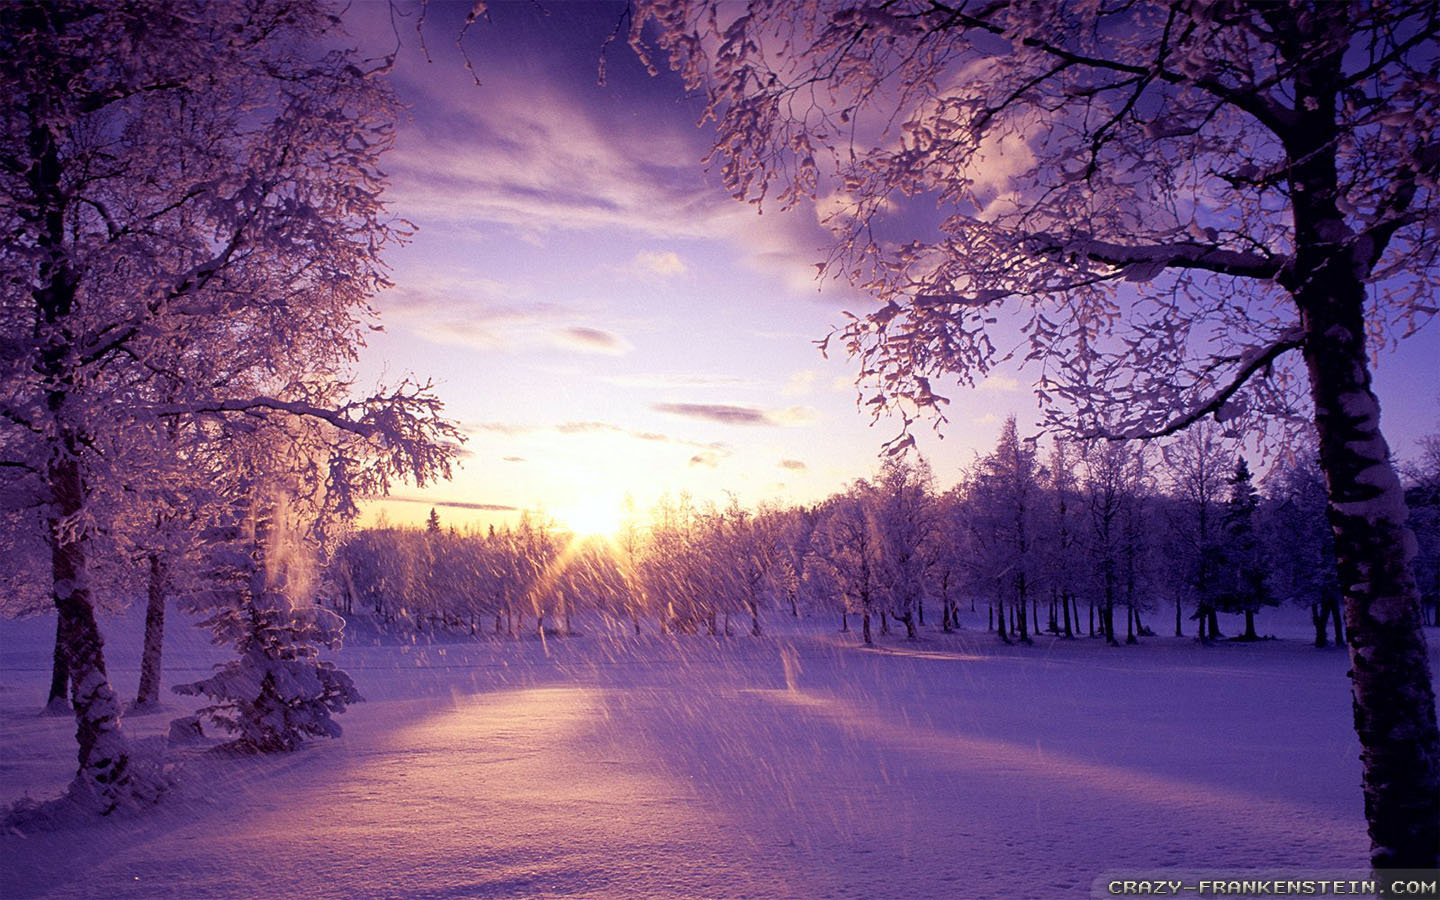 Wallpaper Phone Falling Snowflakes Winter Is Coming Wallpapers Crazy Frankenstein